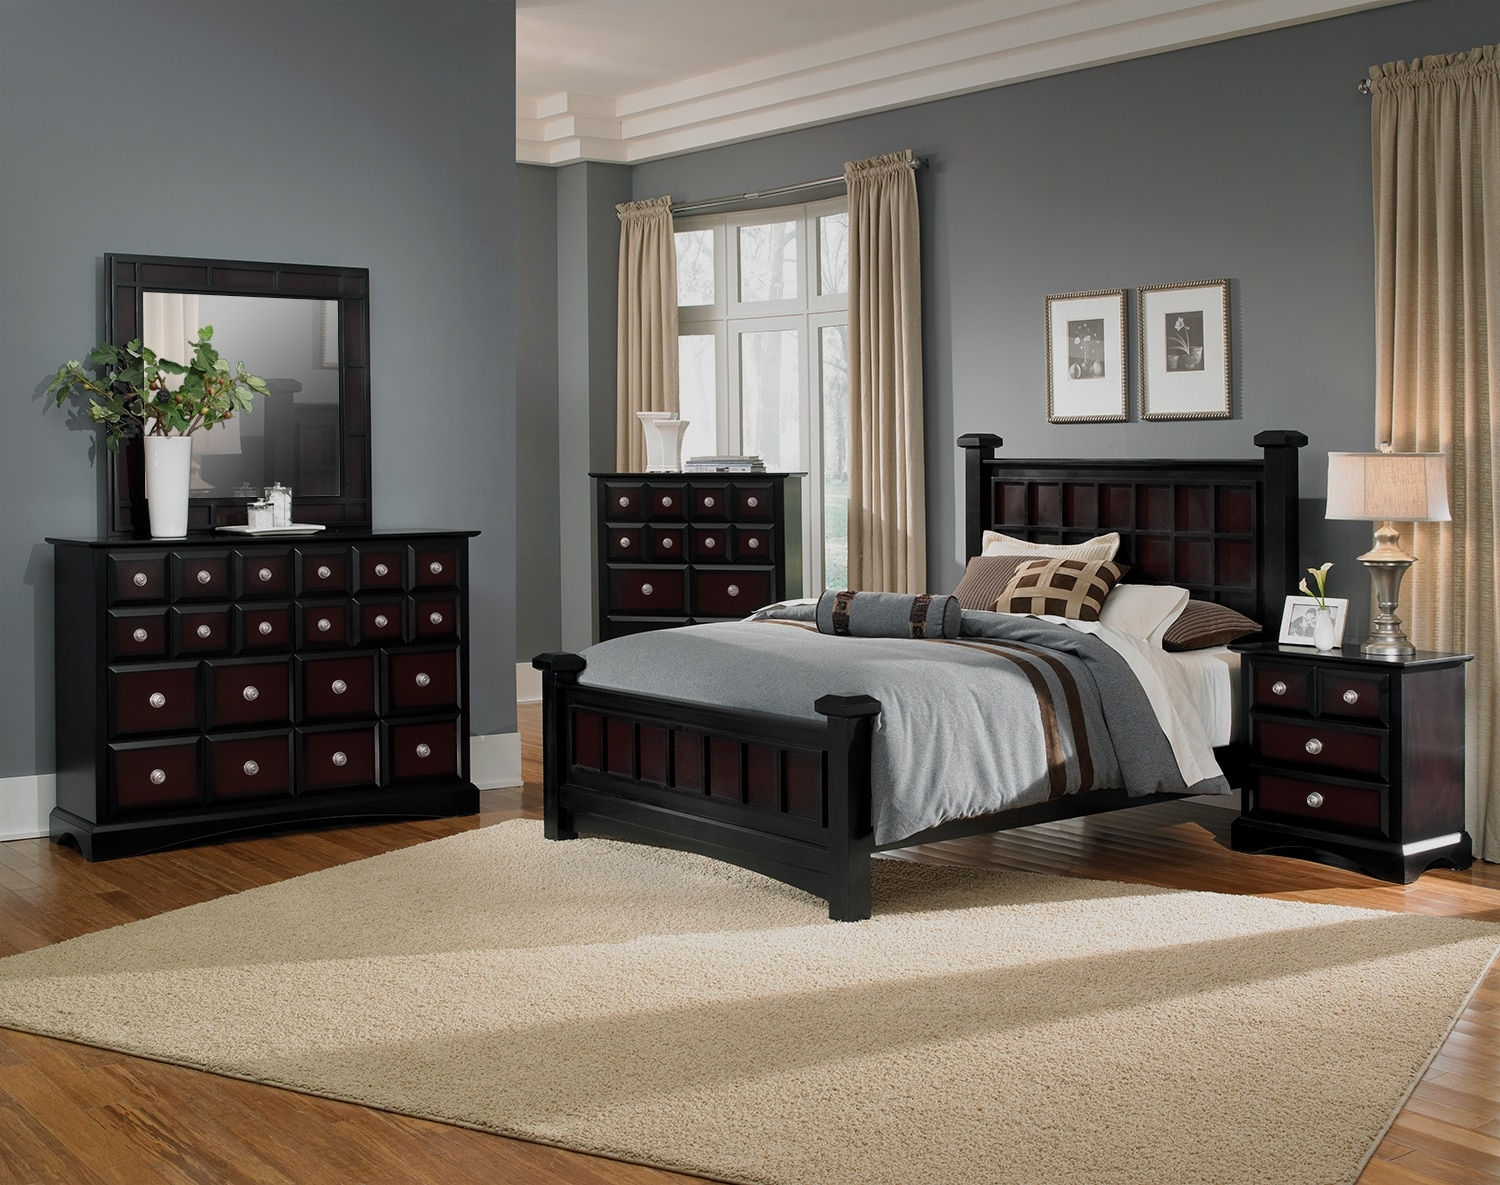 009d9633f70a0 The Winchester Collection - Black and Burnished Merlot